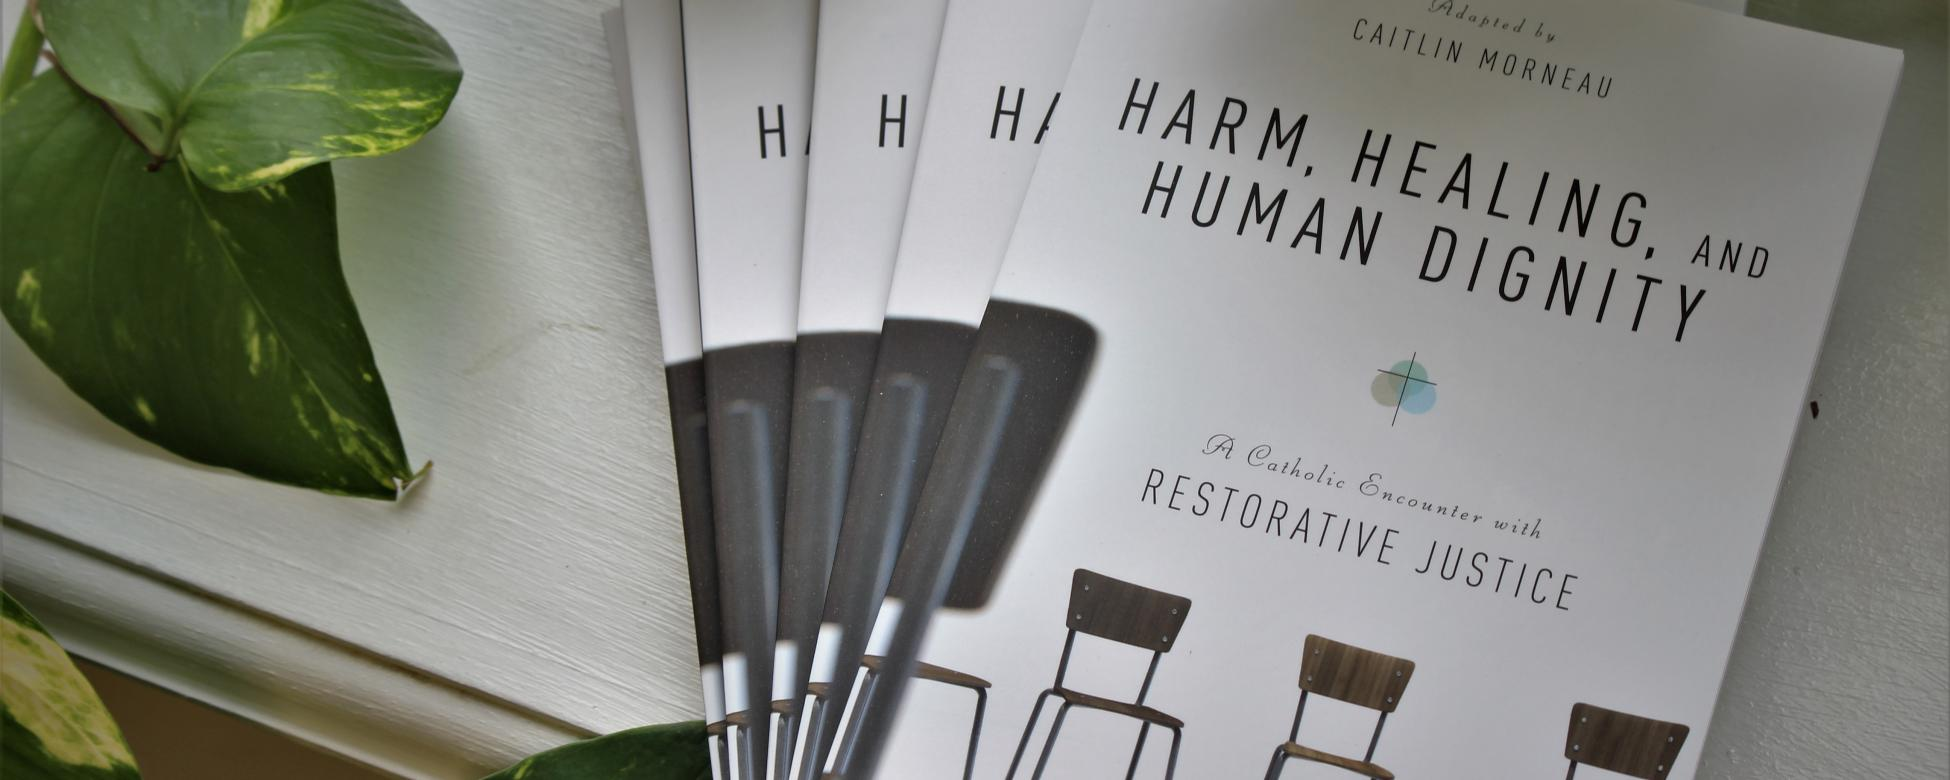 Image: Cover of CMN's new book, Harm, Healing and Human Dignity, surrounded by green plant.